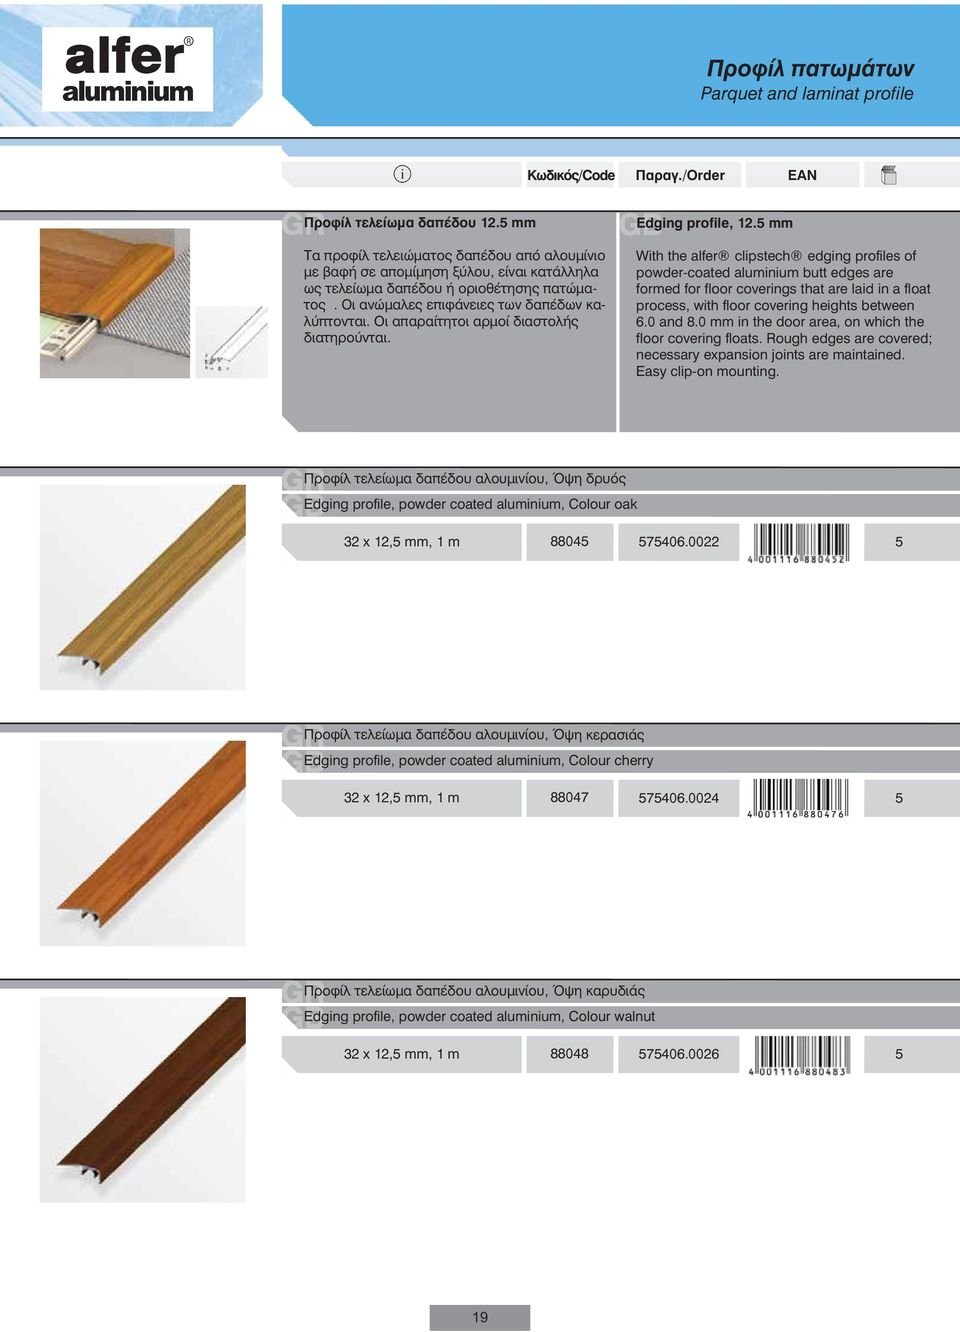 mm Wth the alfer clpstech edgng profles of powder-coated alumnum butt edges are formed for floor coverngs that are lad n a float process, wth floor coverng heghts between 6.0 and 8.